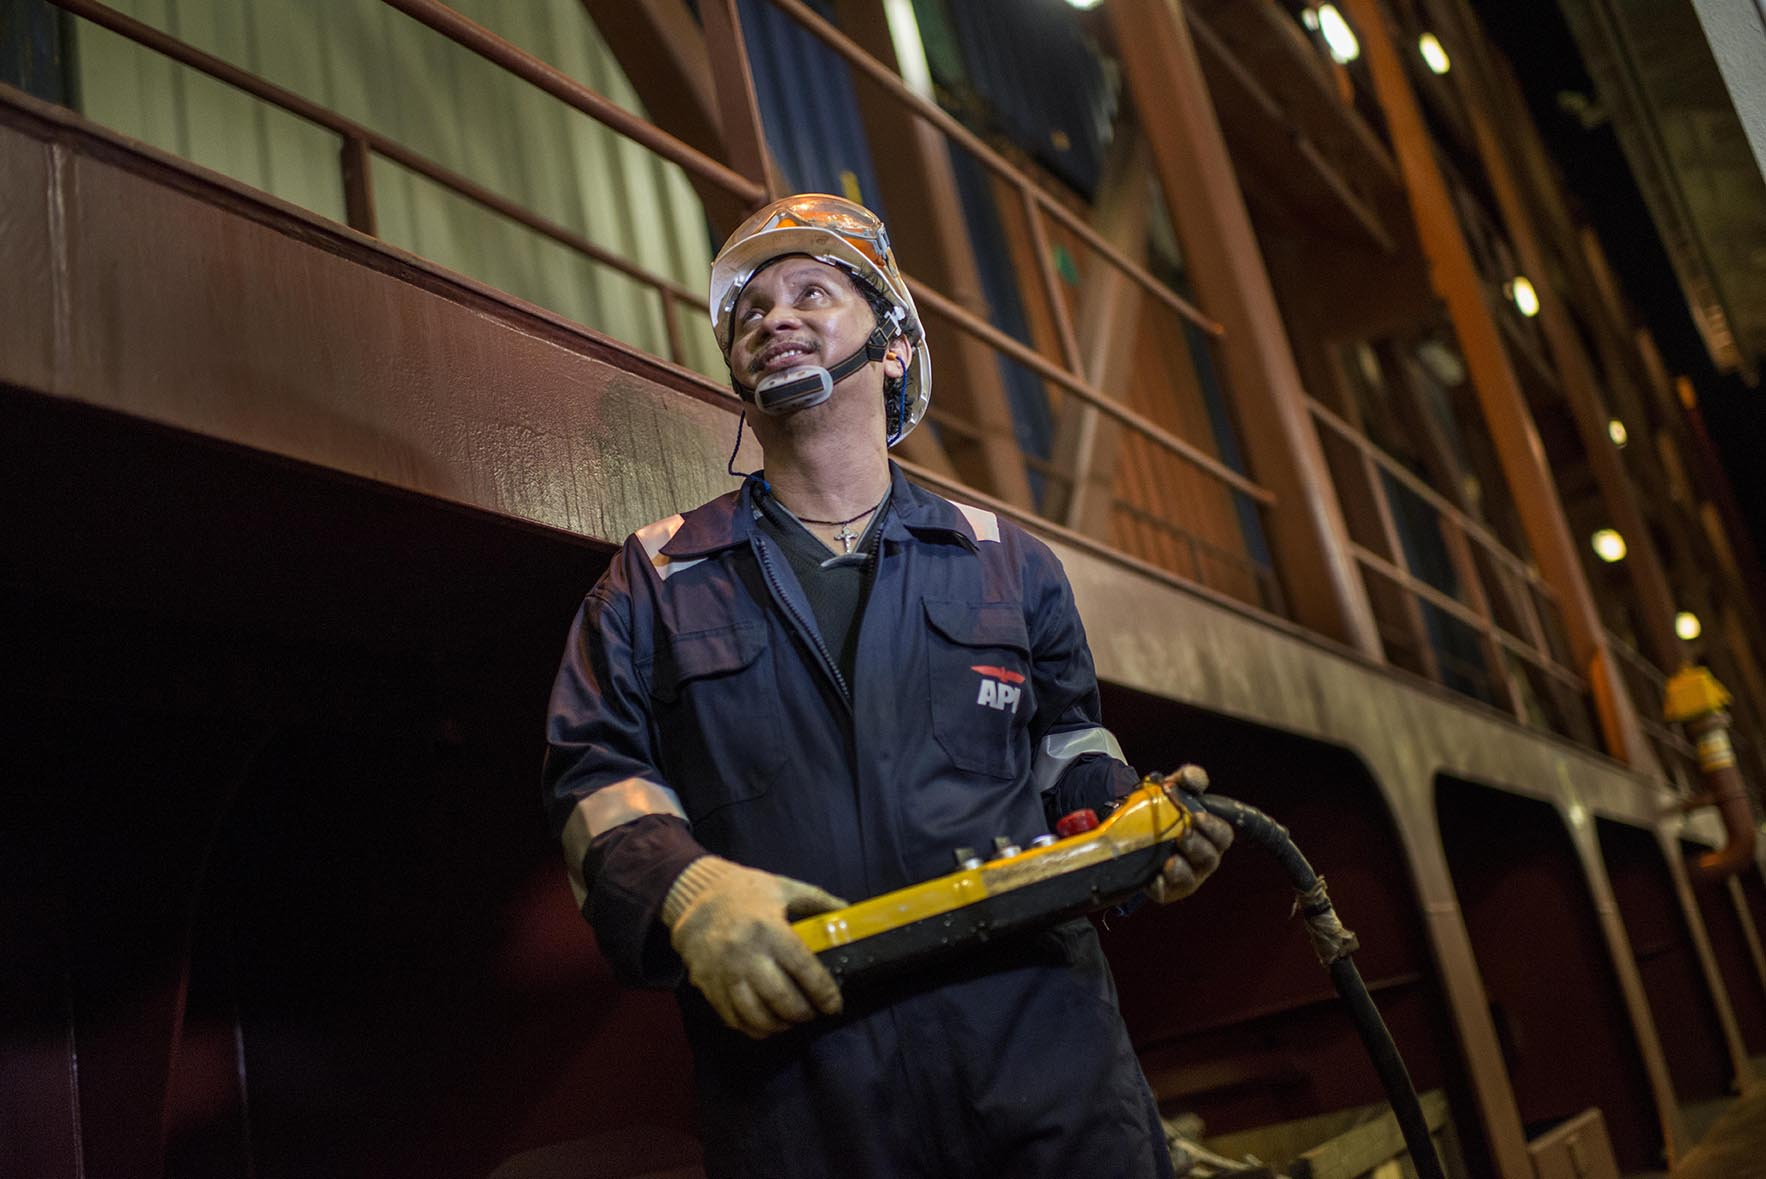 APL Seafarer - At work on board the APL vessel